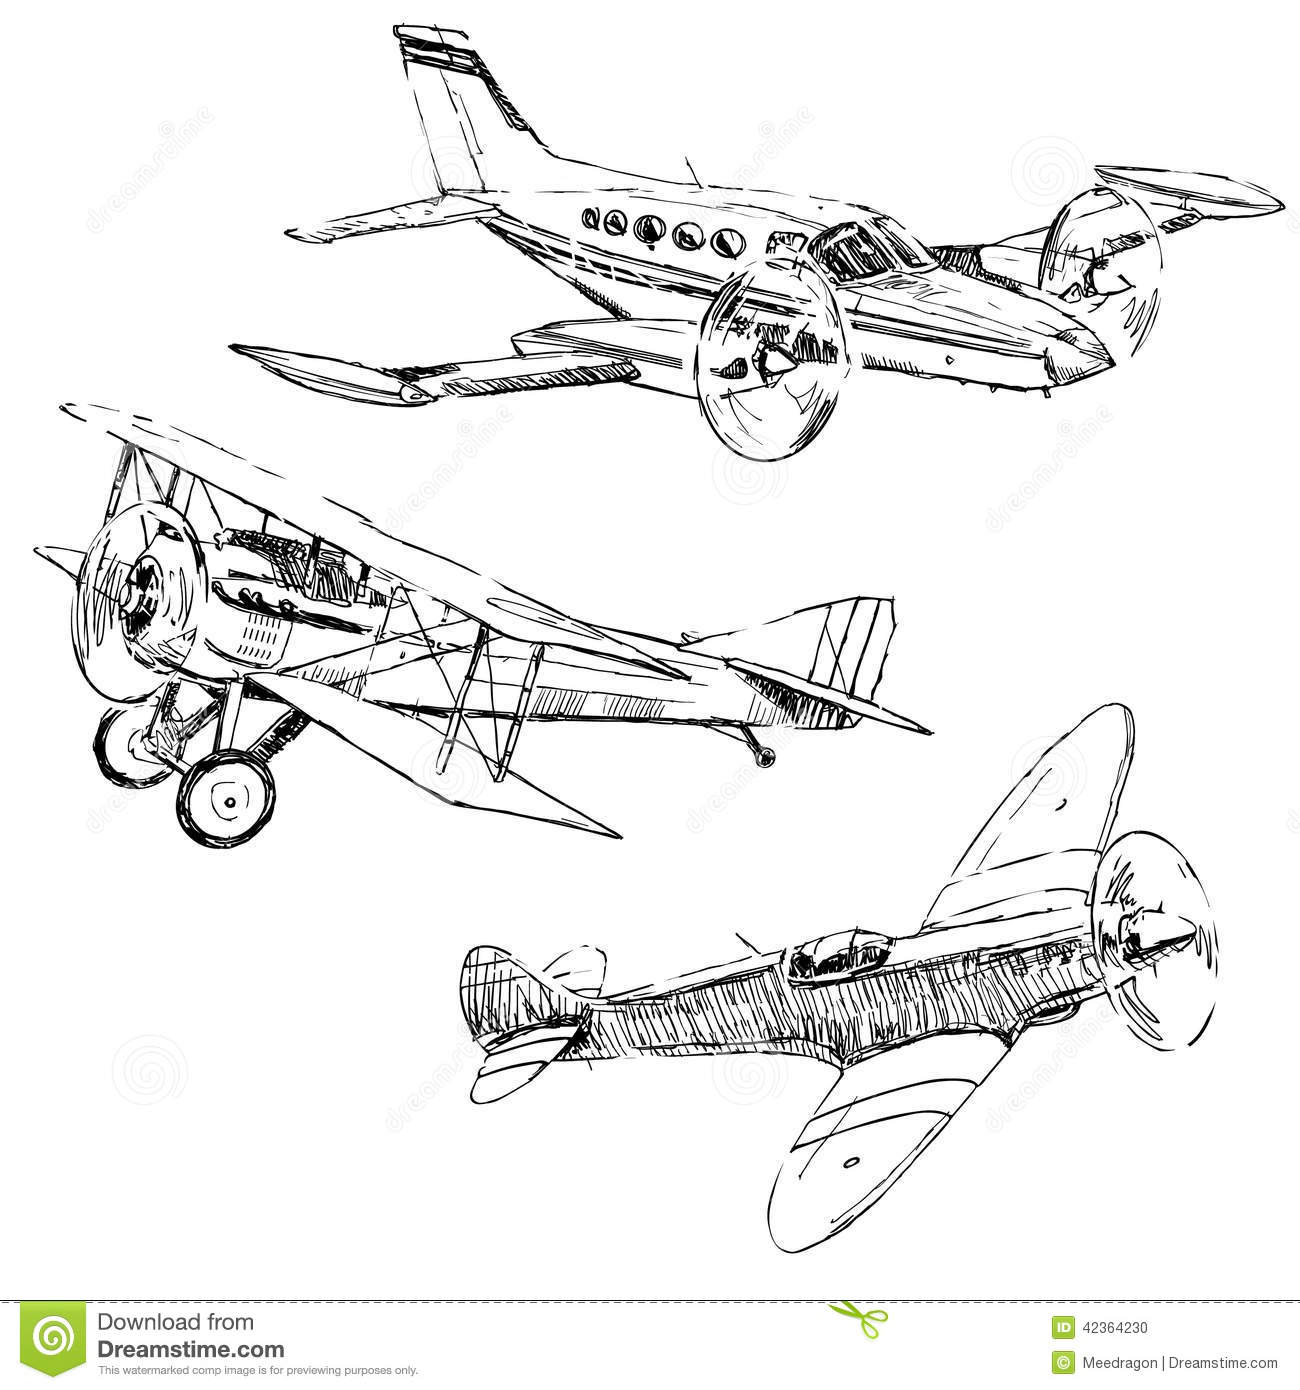 Dessins d 39 avions illustration de vecteur image 42364230 - Dessins avions ...